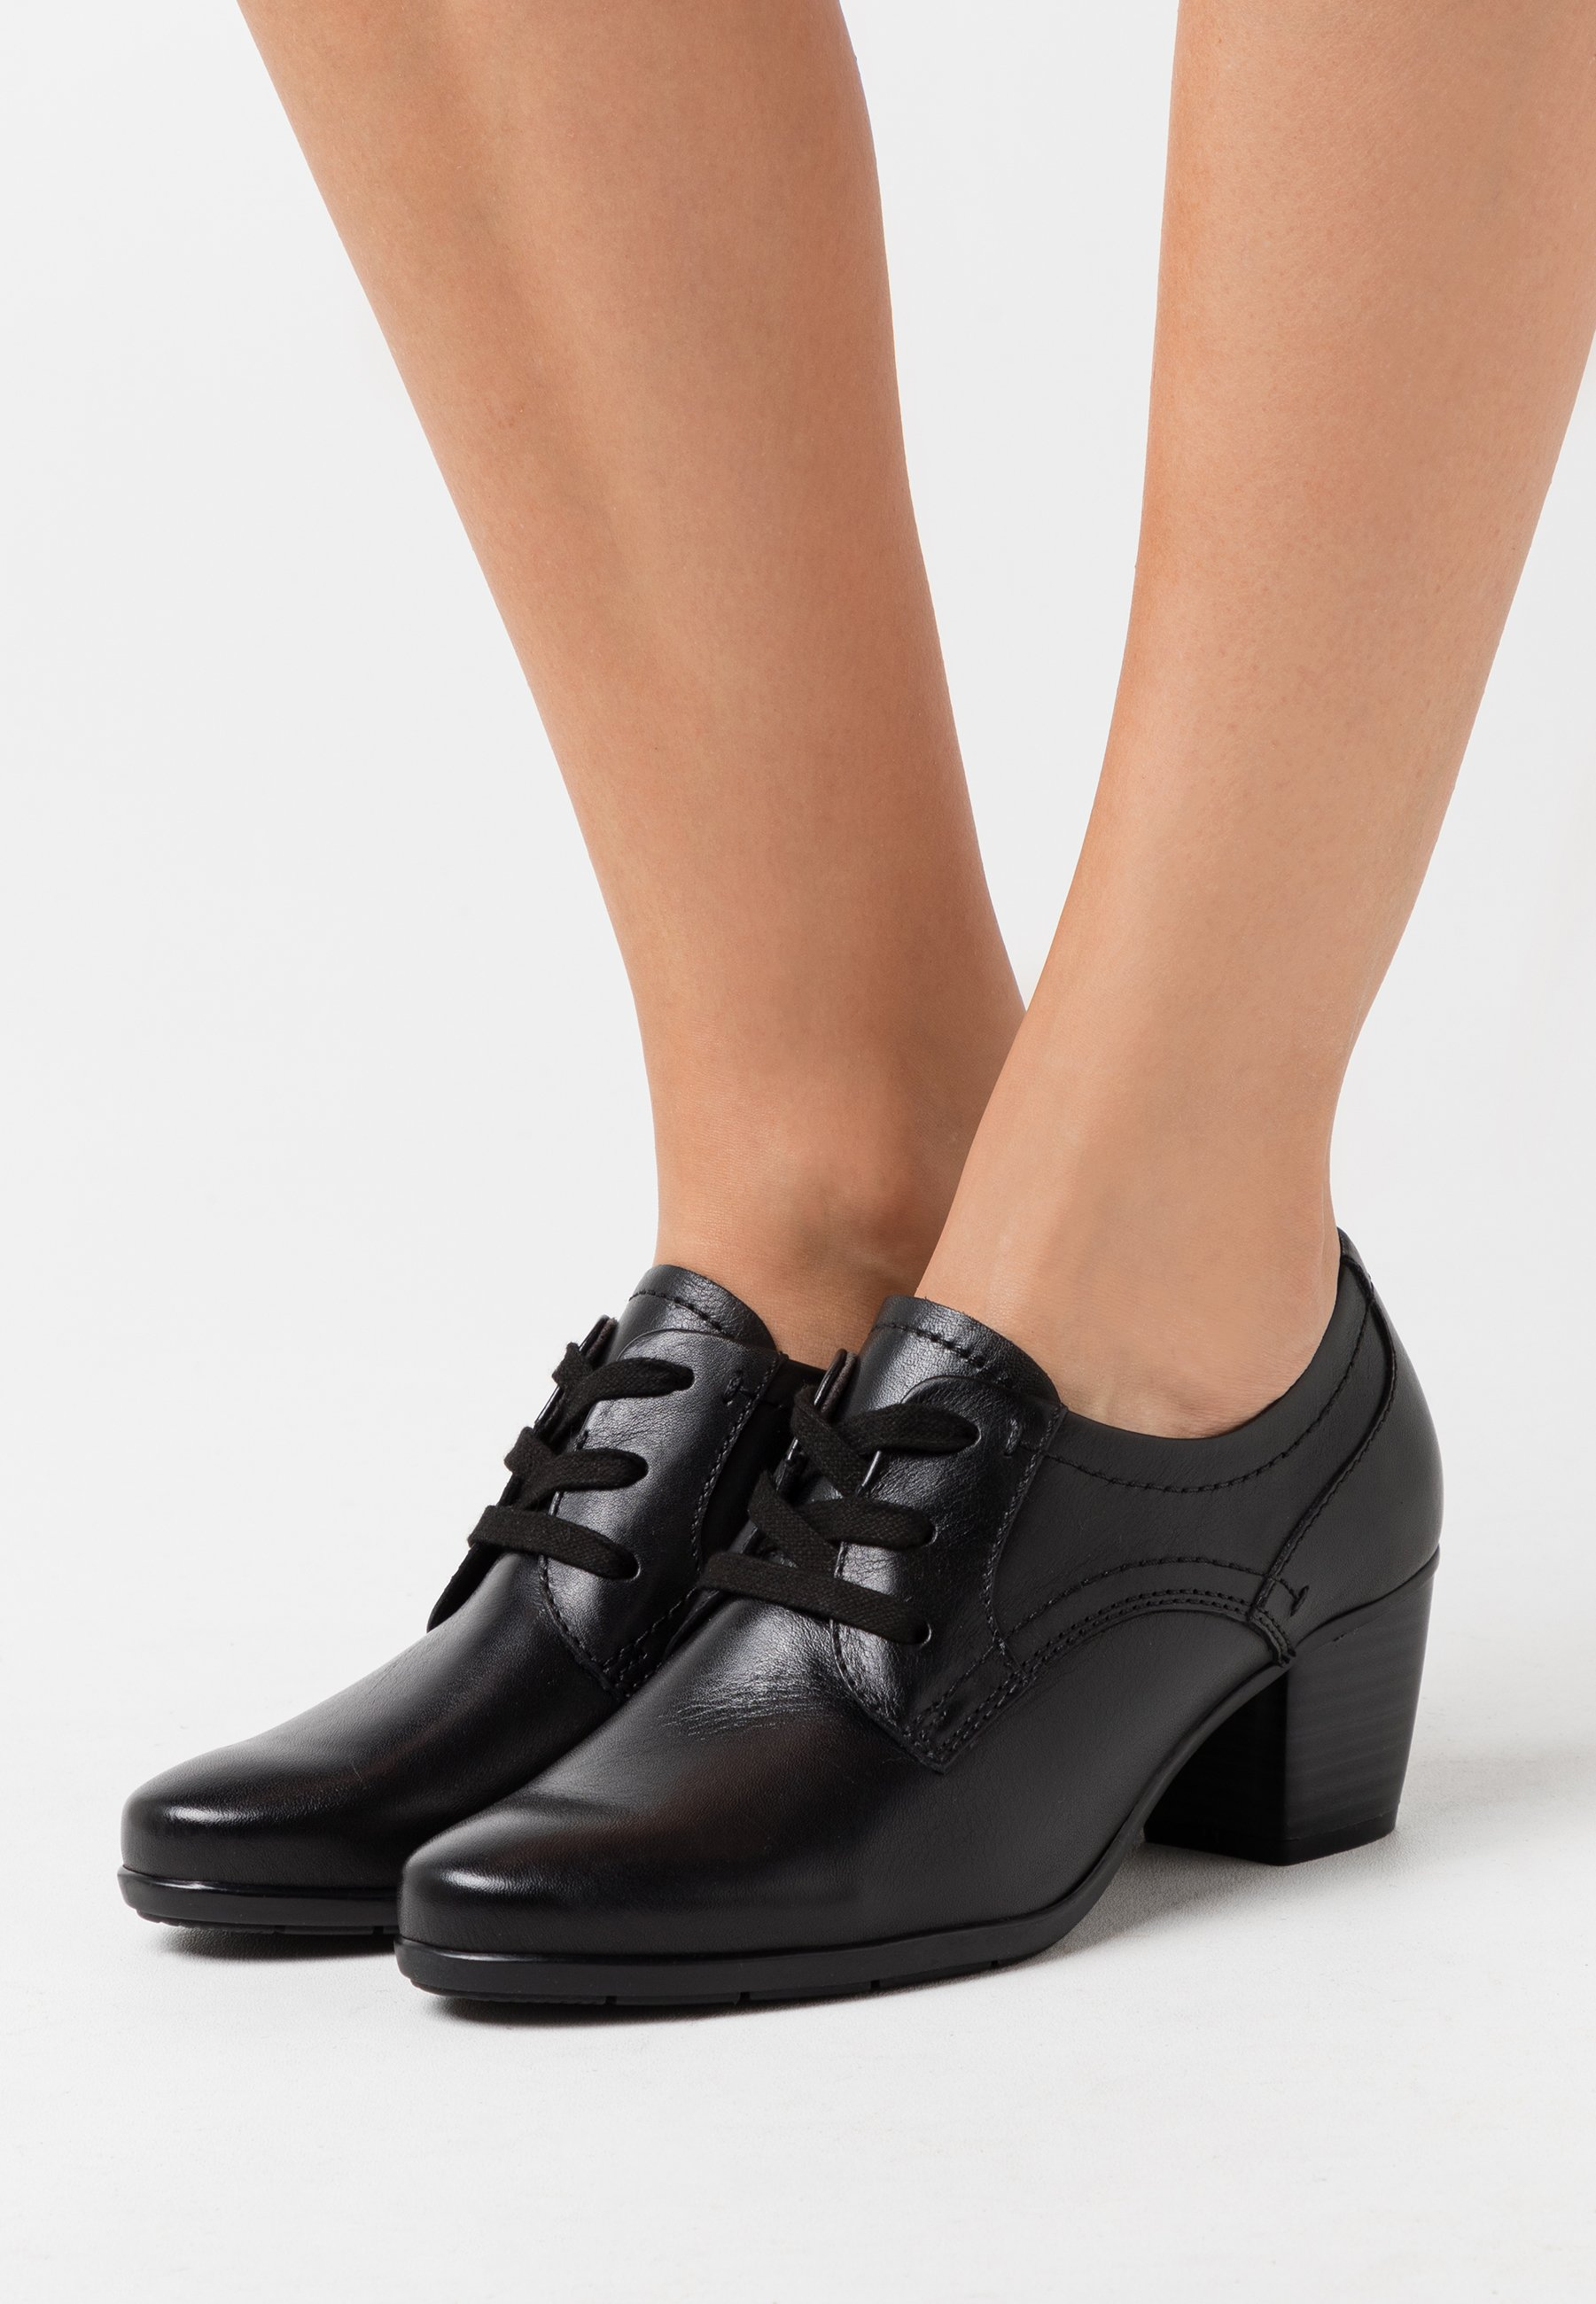 Outlet New Fashion Style Of Women's Shoes Jana Ankle boots black rPBBRFwAg exhyiQIeL